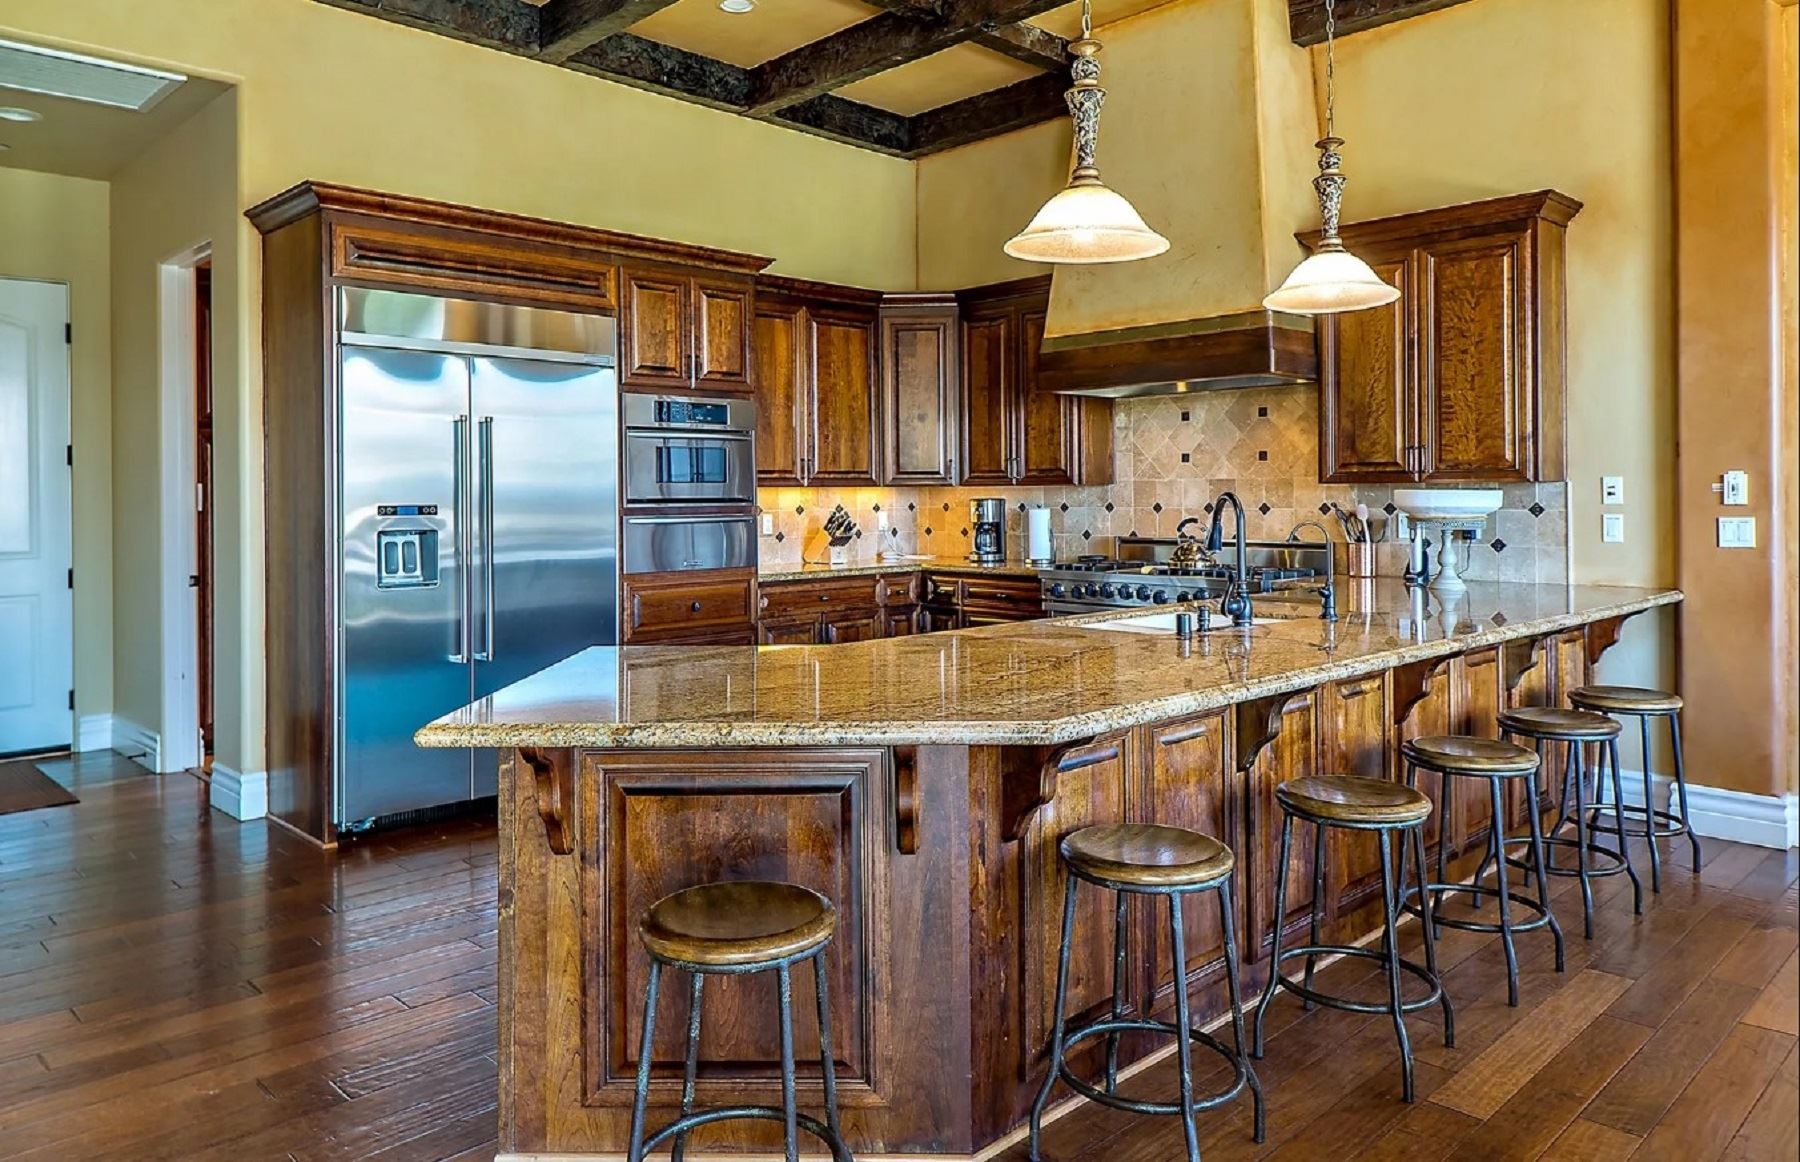 Frontier Farmhouse - Interior - Kitchen with wide island that has six barstools for eating at the breakfast bar